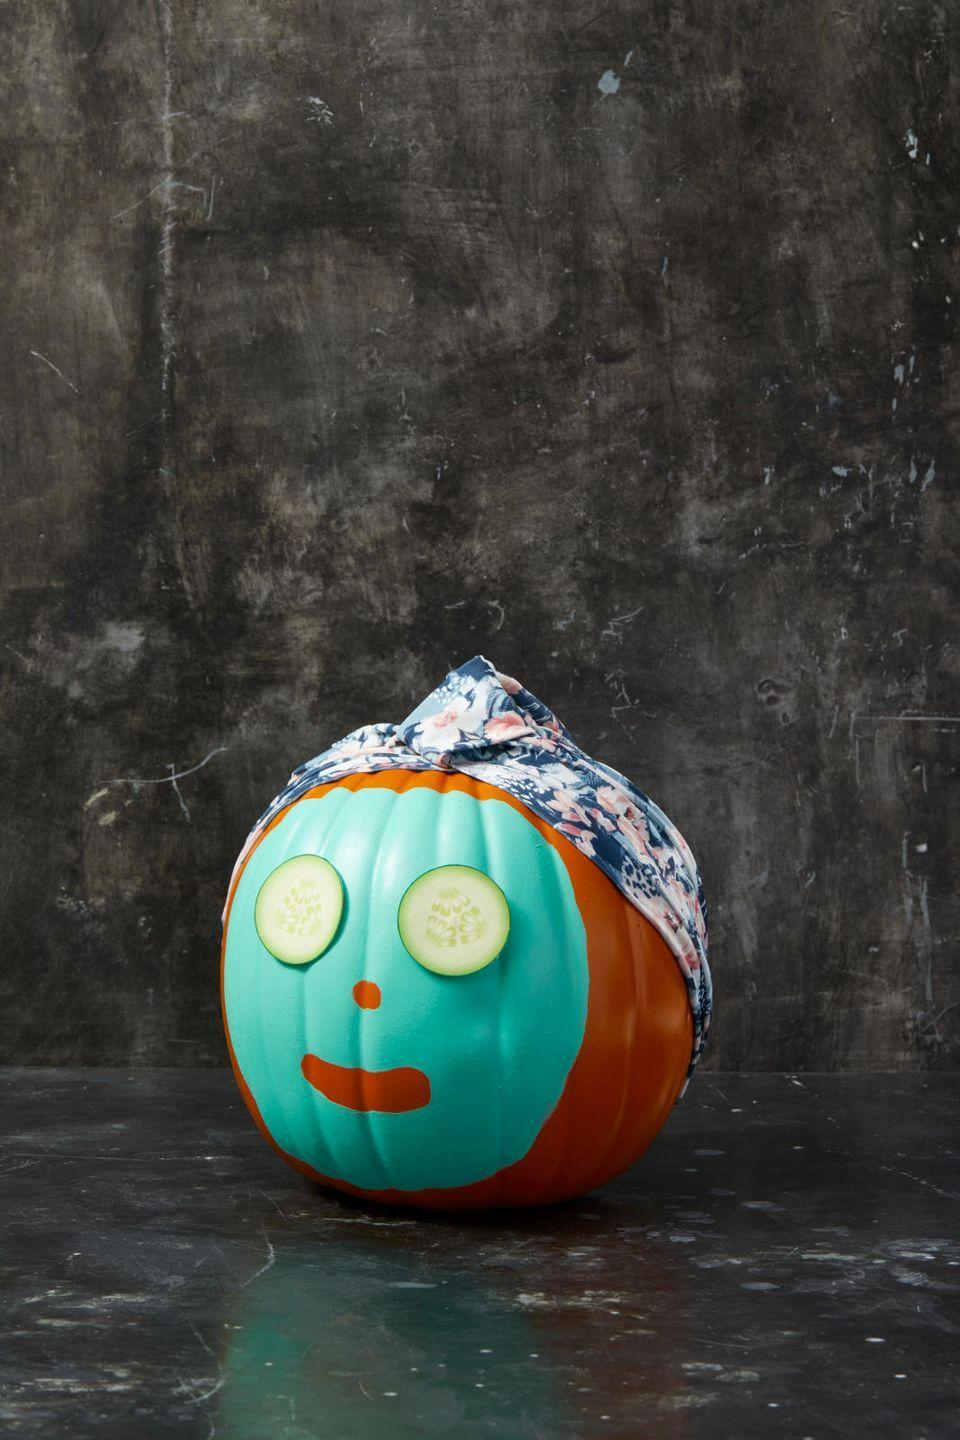 """<p>To make this spa-going pumpkin face, simply paint a """"face mask"""" onto a real or faux pumpkin, leaving spaces for the nose and mouth. Let it dry completely. Then, stretch a decorative shower cap onto the pumpkin's """"head"""" and pin it in place with straight pins. To make the cucumber eyes, just print images of cucumbers from a picture online and glue them on. </p><p><strong>RELATED:</strong> <a href=""""https://www.goodhousekeeping.com/holidays/halloween-ideas/g2592/pumpkin-painting-ideas/"""" rel=""""nofollow noopener"""" target=""""_blank"""" data-ylk=""""slk:30+ Pumpkin Painting Ideas for a Fun Halloween"""" class=""""link rapid-noclick-resp"""">30+ Pumpkin Painting Ideas for a Fun Halloween</a></p>"""